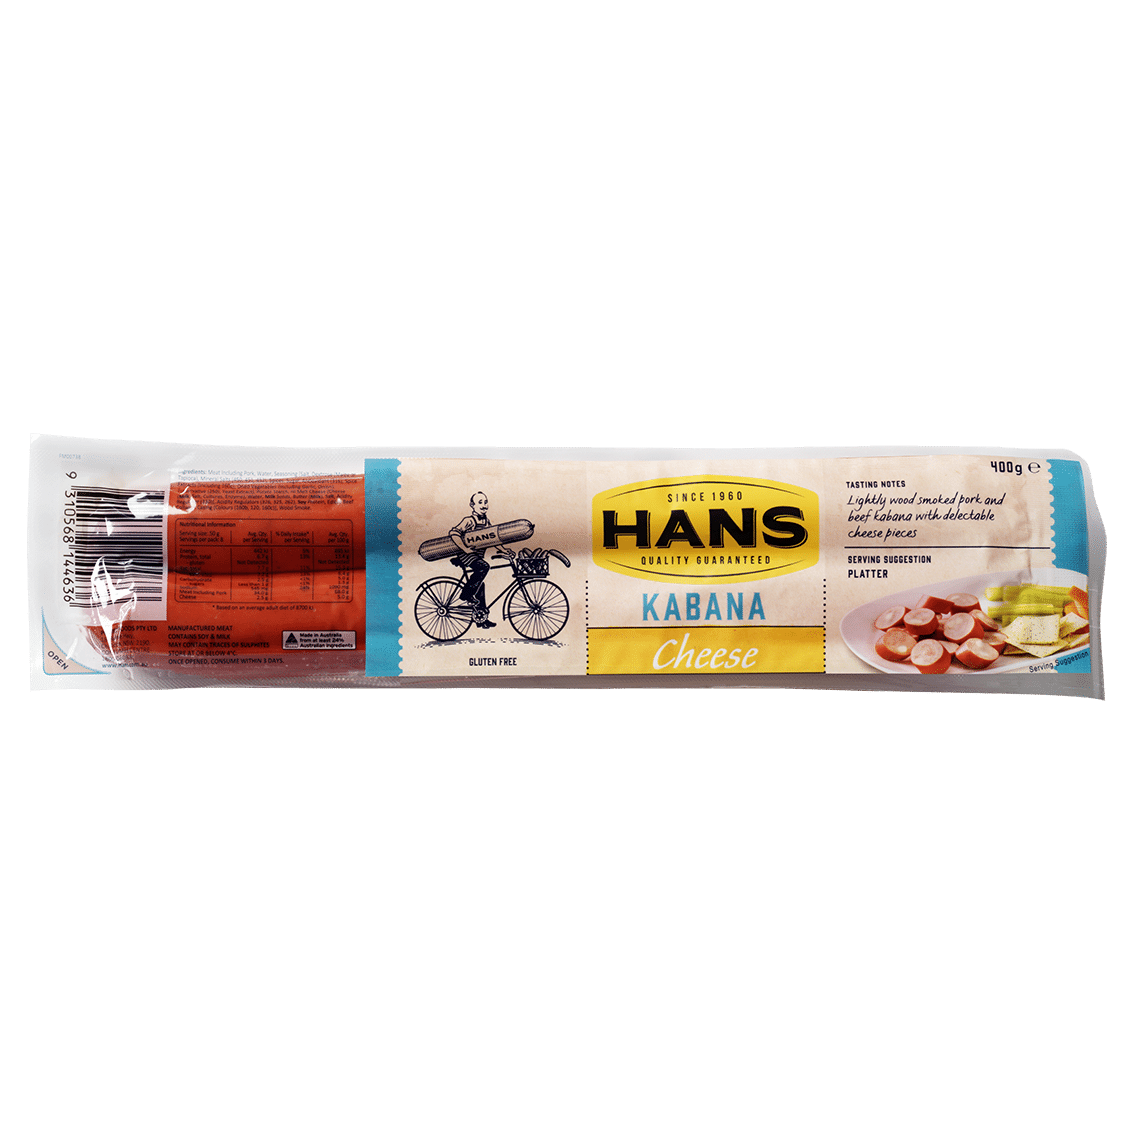 Hans Cheese Kabana 400g